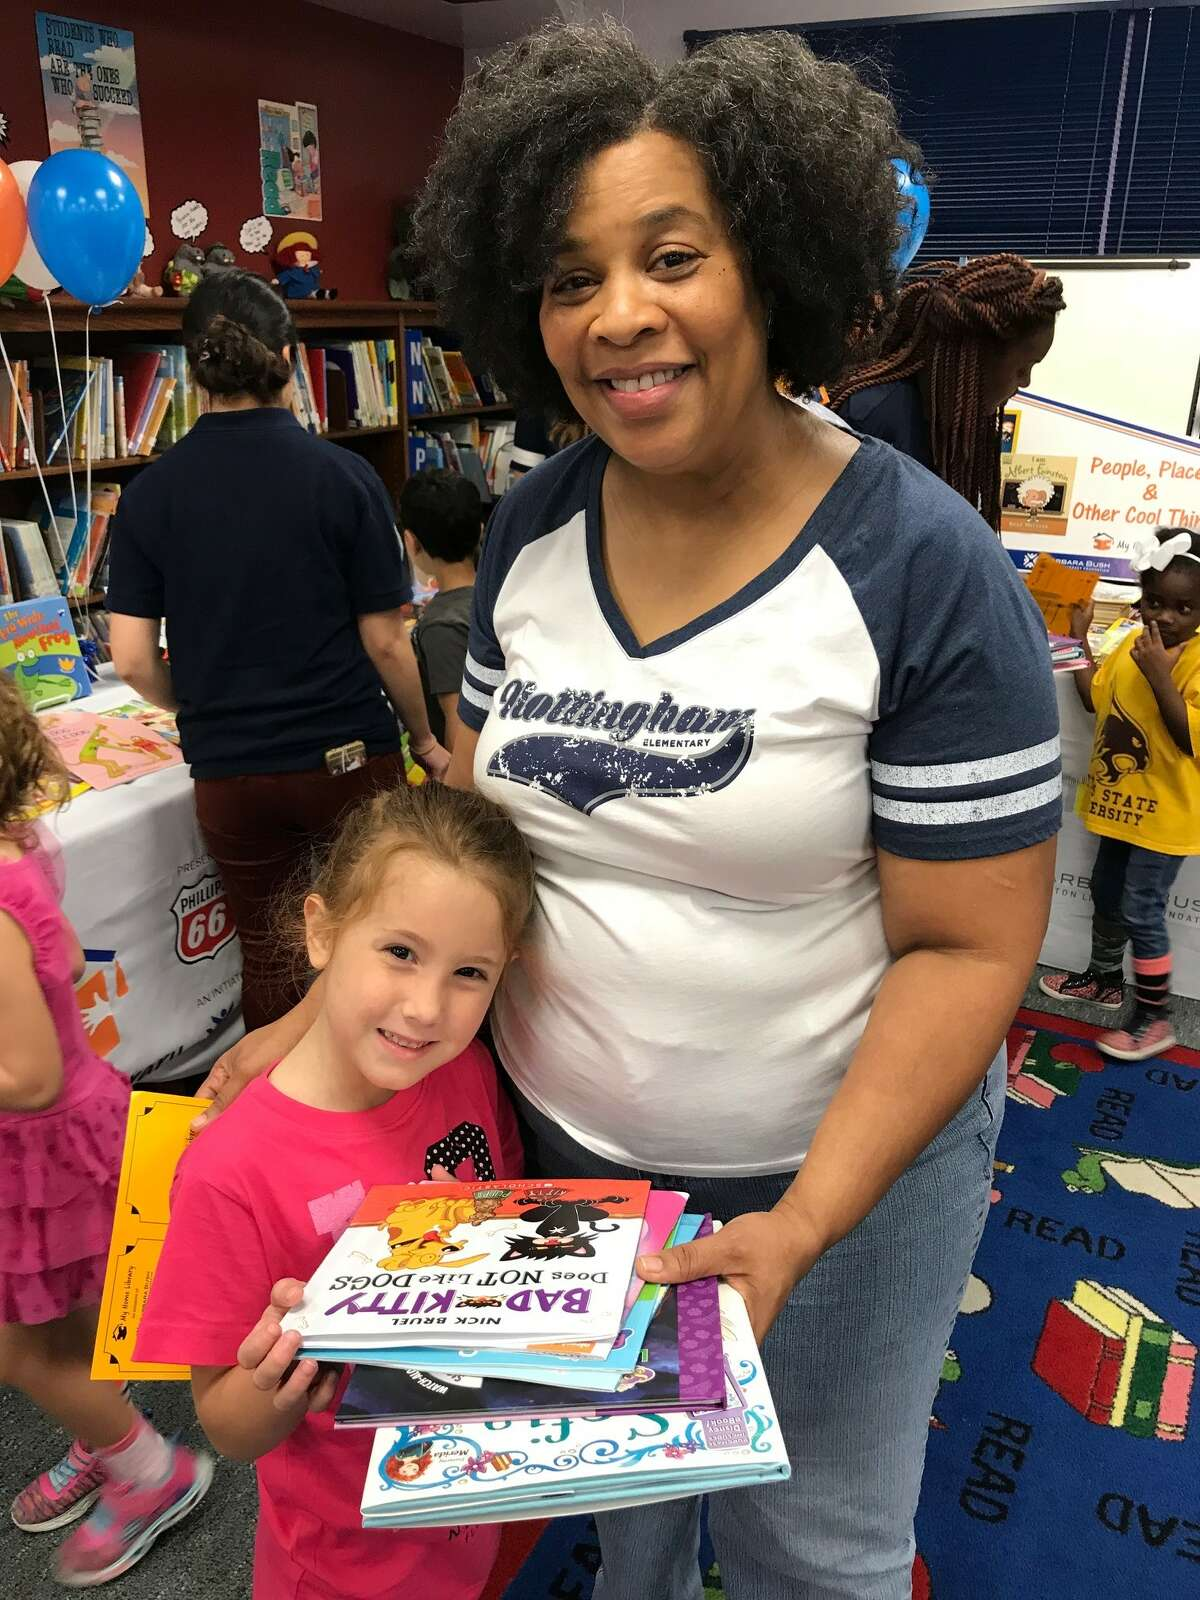 Nottingham Elementary was one of a number of elementary schools chosen based on their need but the Barbara BushHouston Literacy Foundation to give each one of their students 6 free books of their choosing.